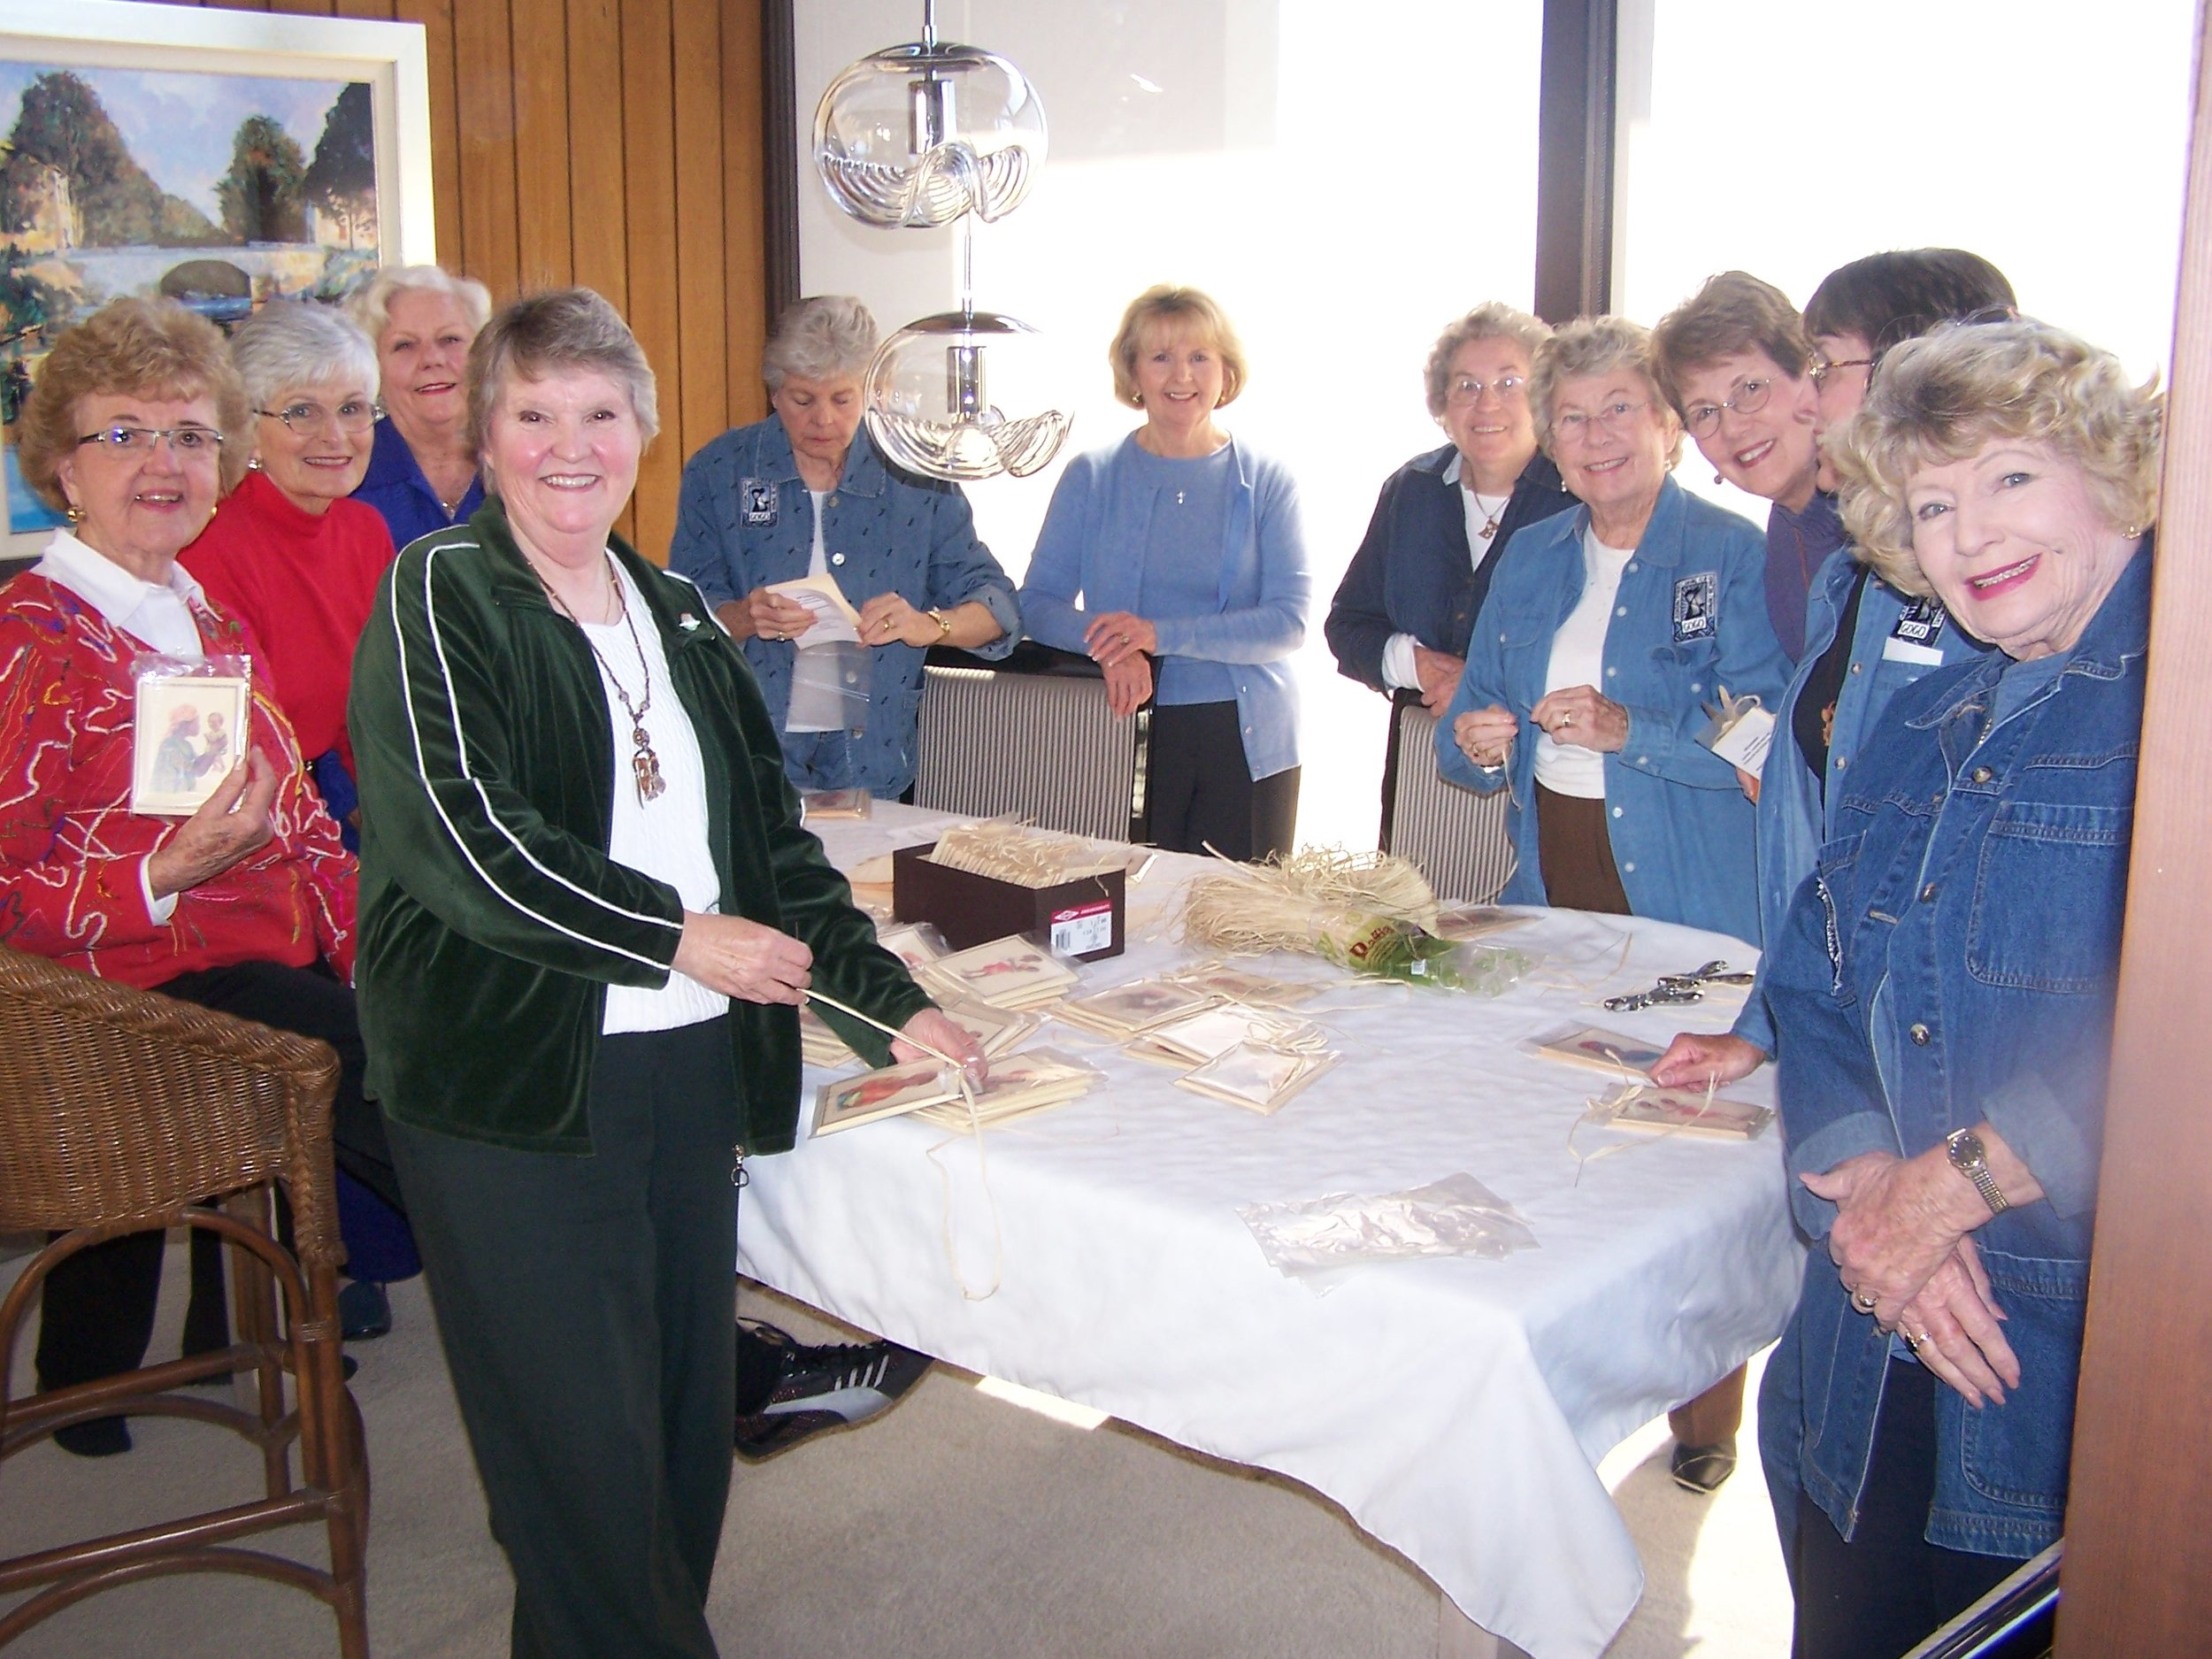 Mariners Church gogos (the original Gogo group) assemble note card packs for sale at a fund raiser.